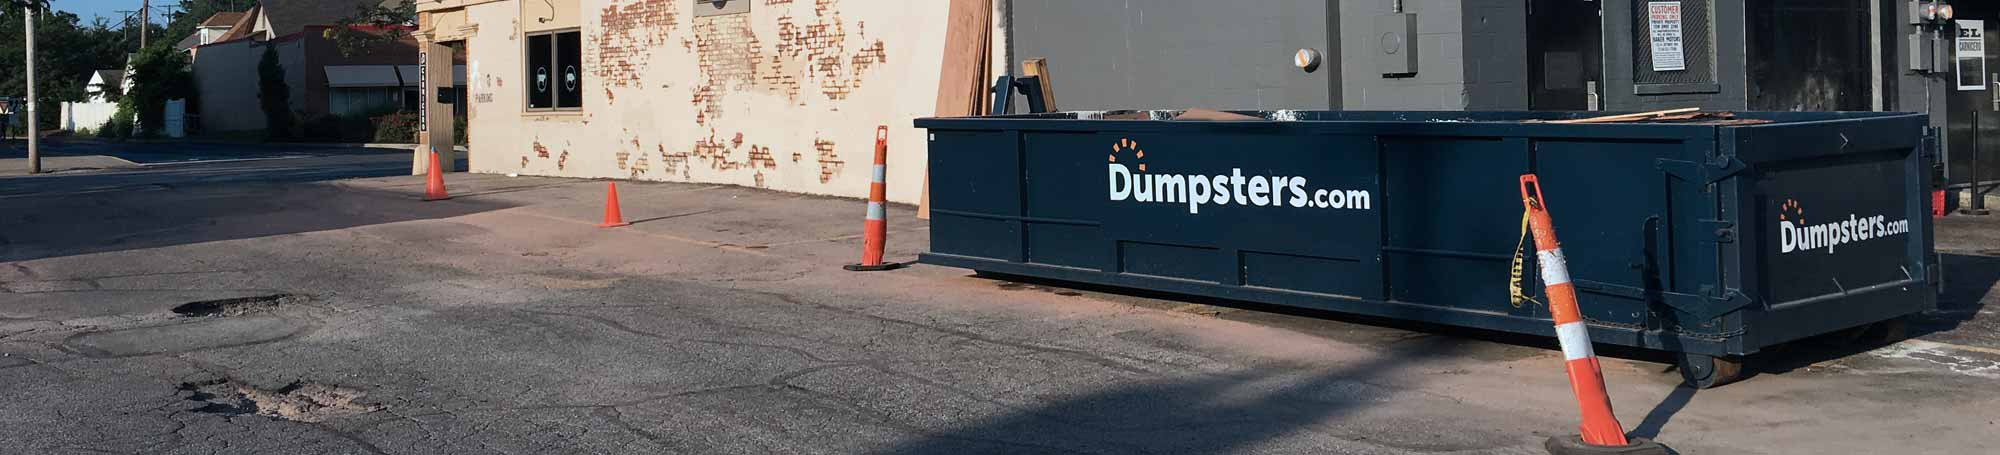 Roll Off Dumpster in Urban Parking Lot.